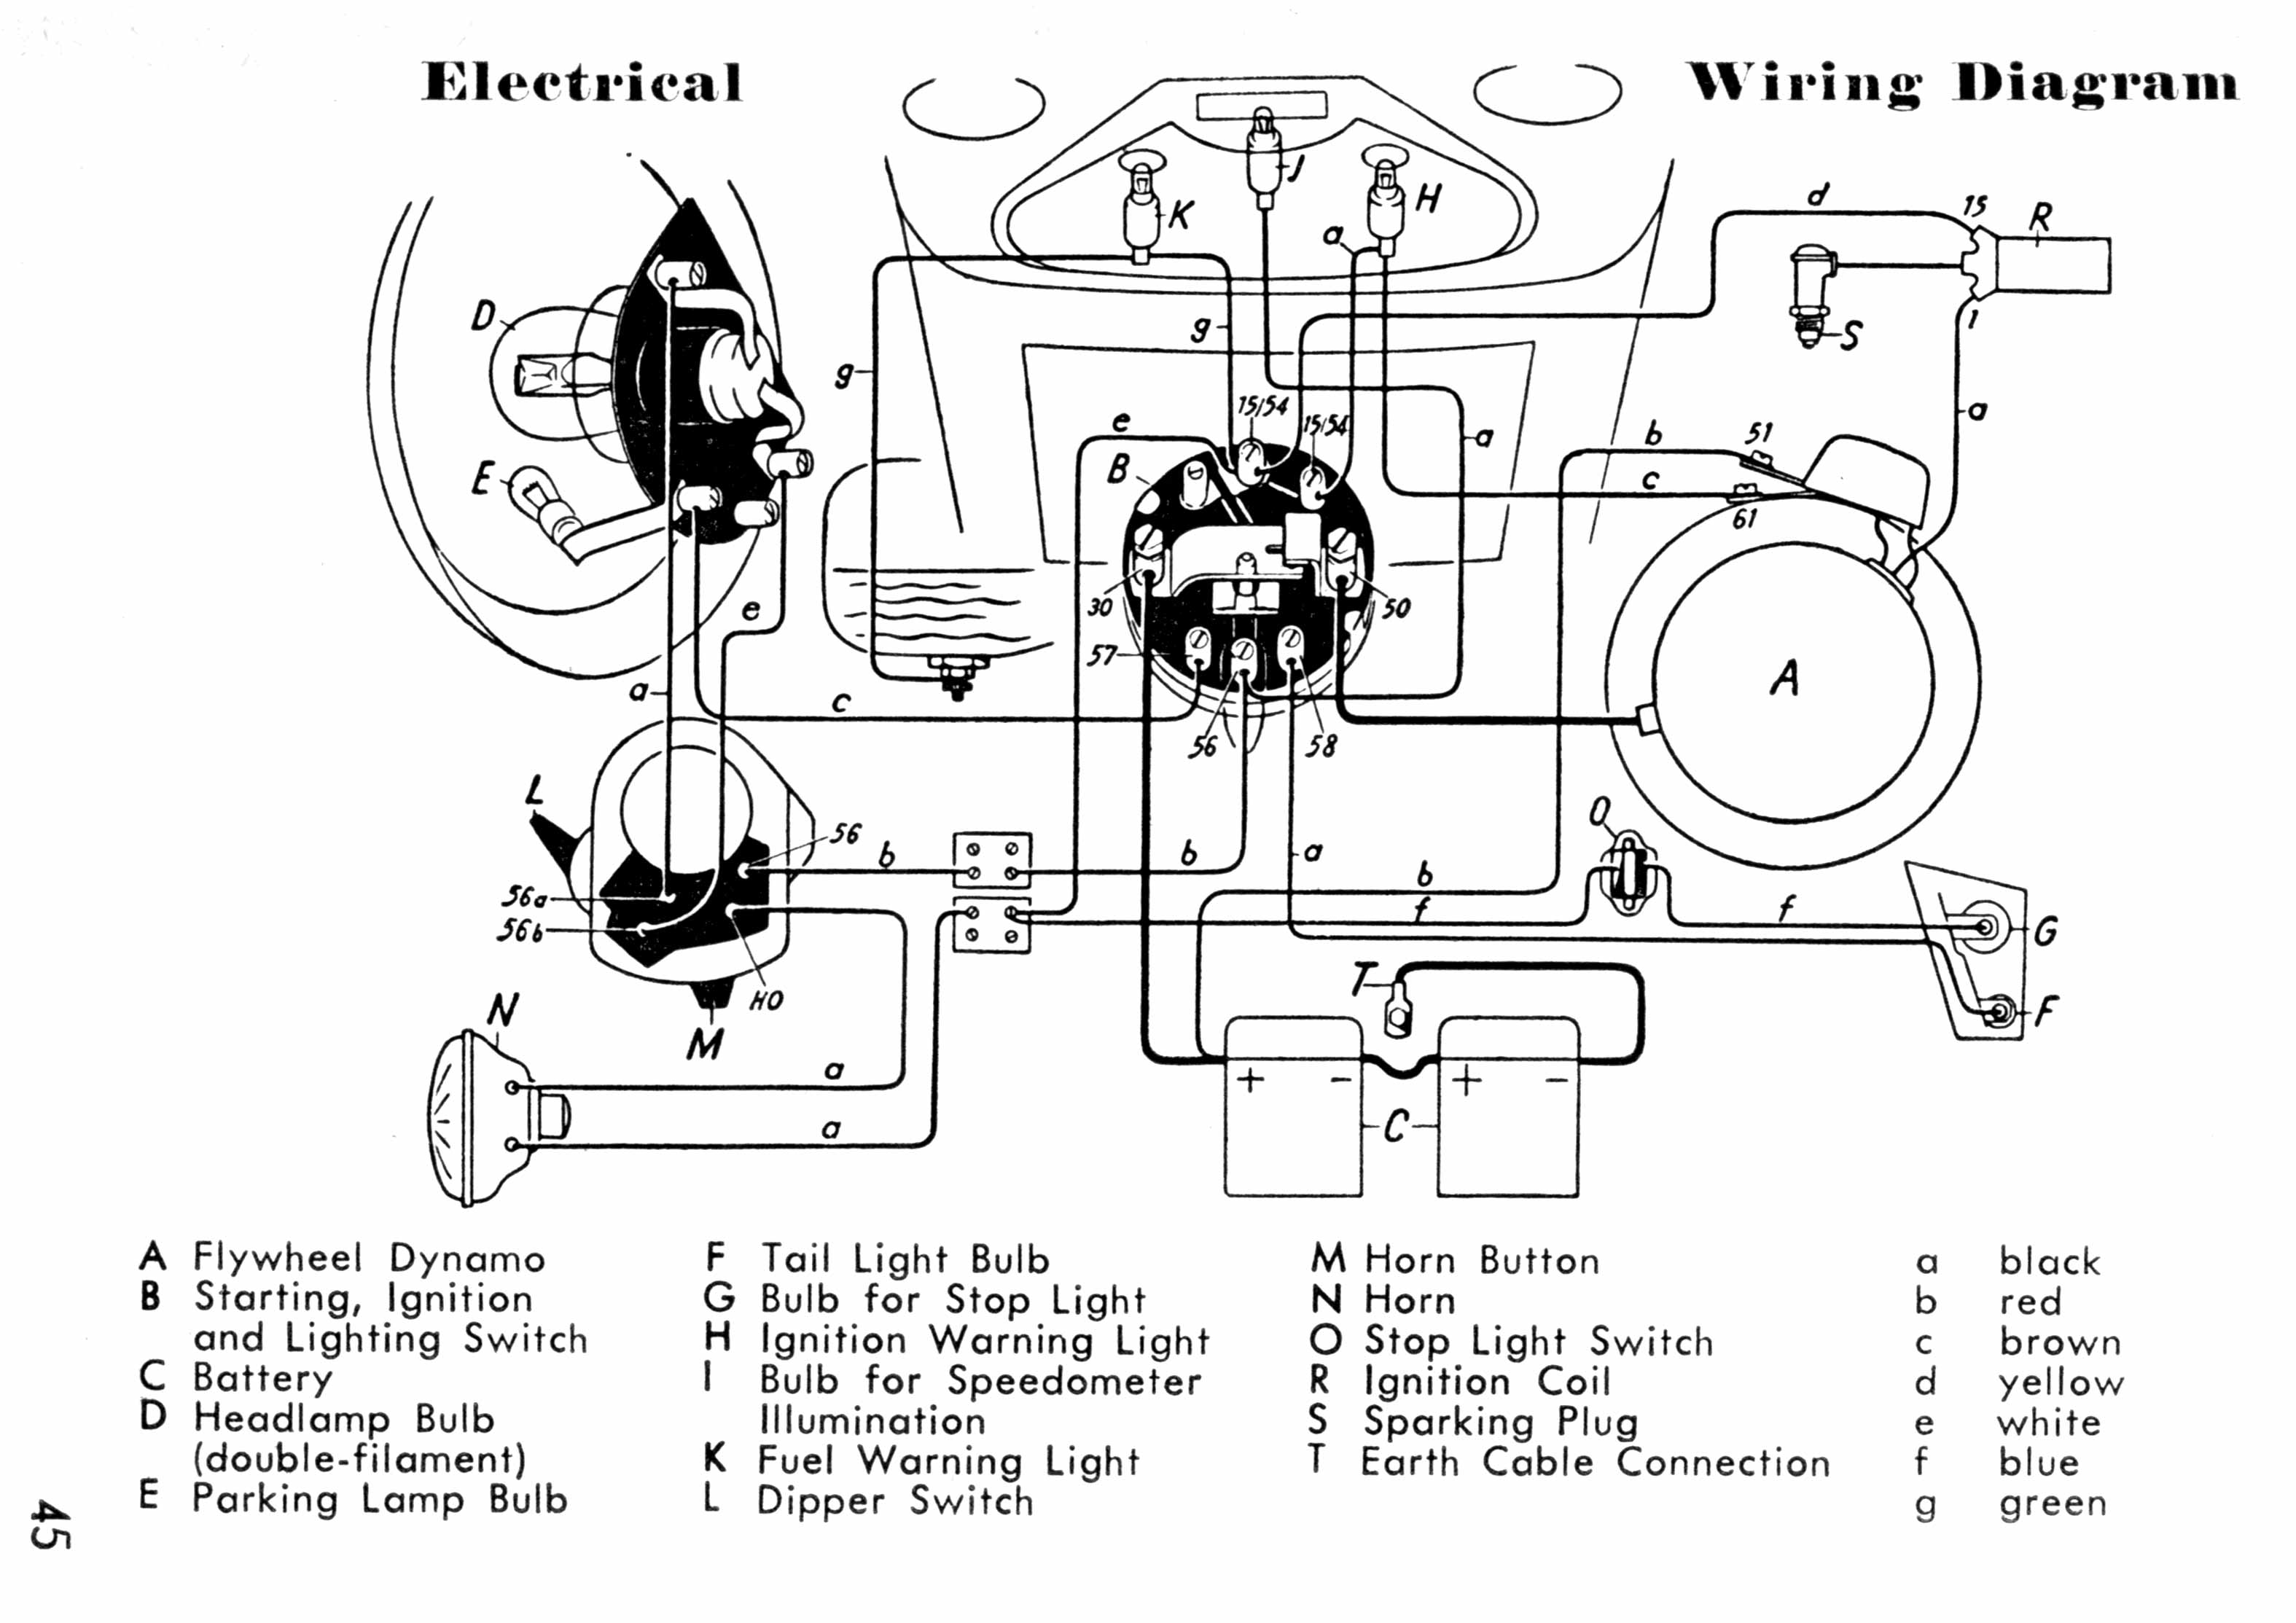 WRG-8370] 45 Harley Wiring Diagram on